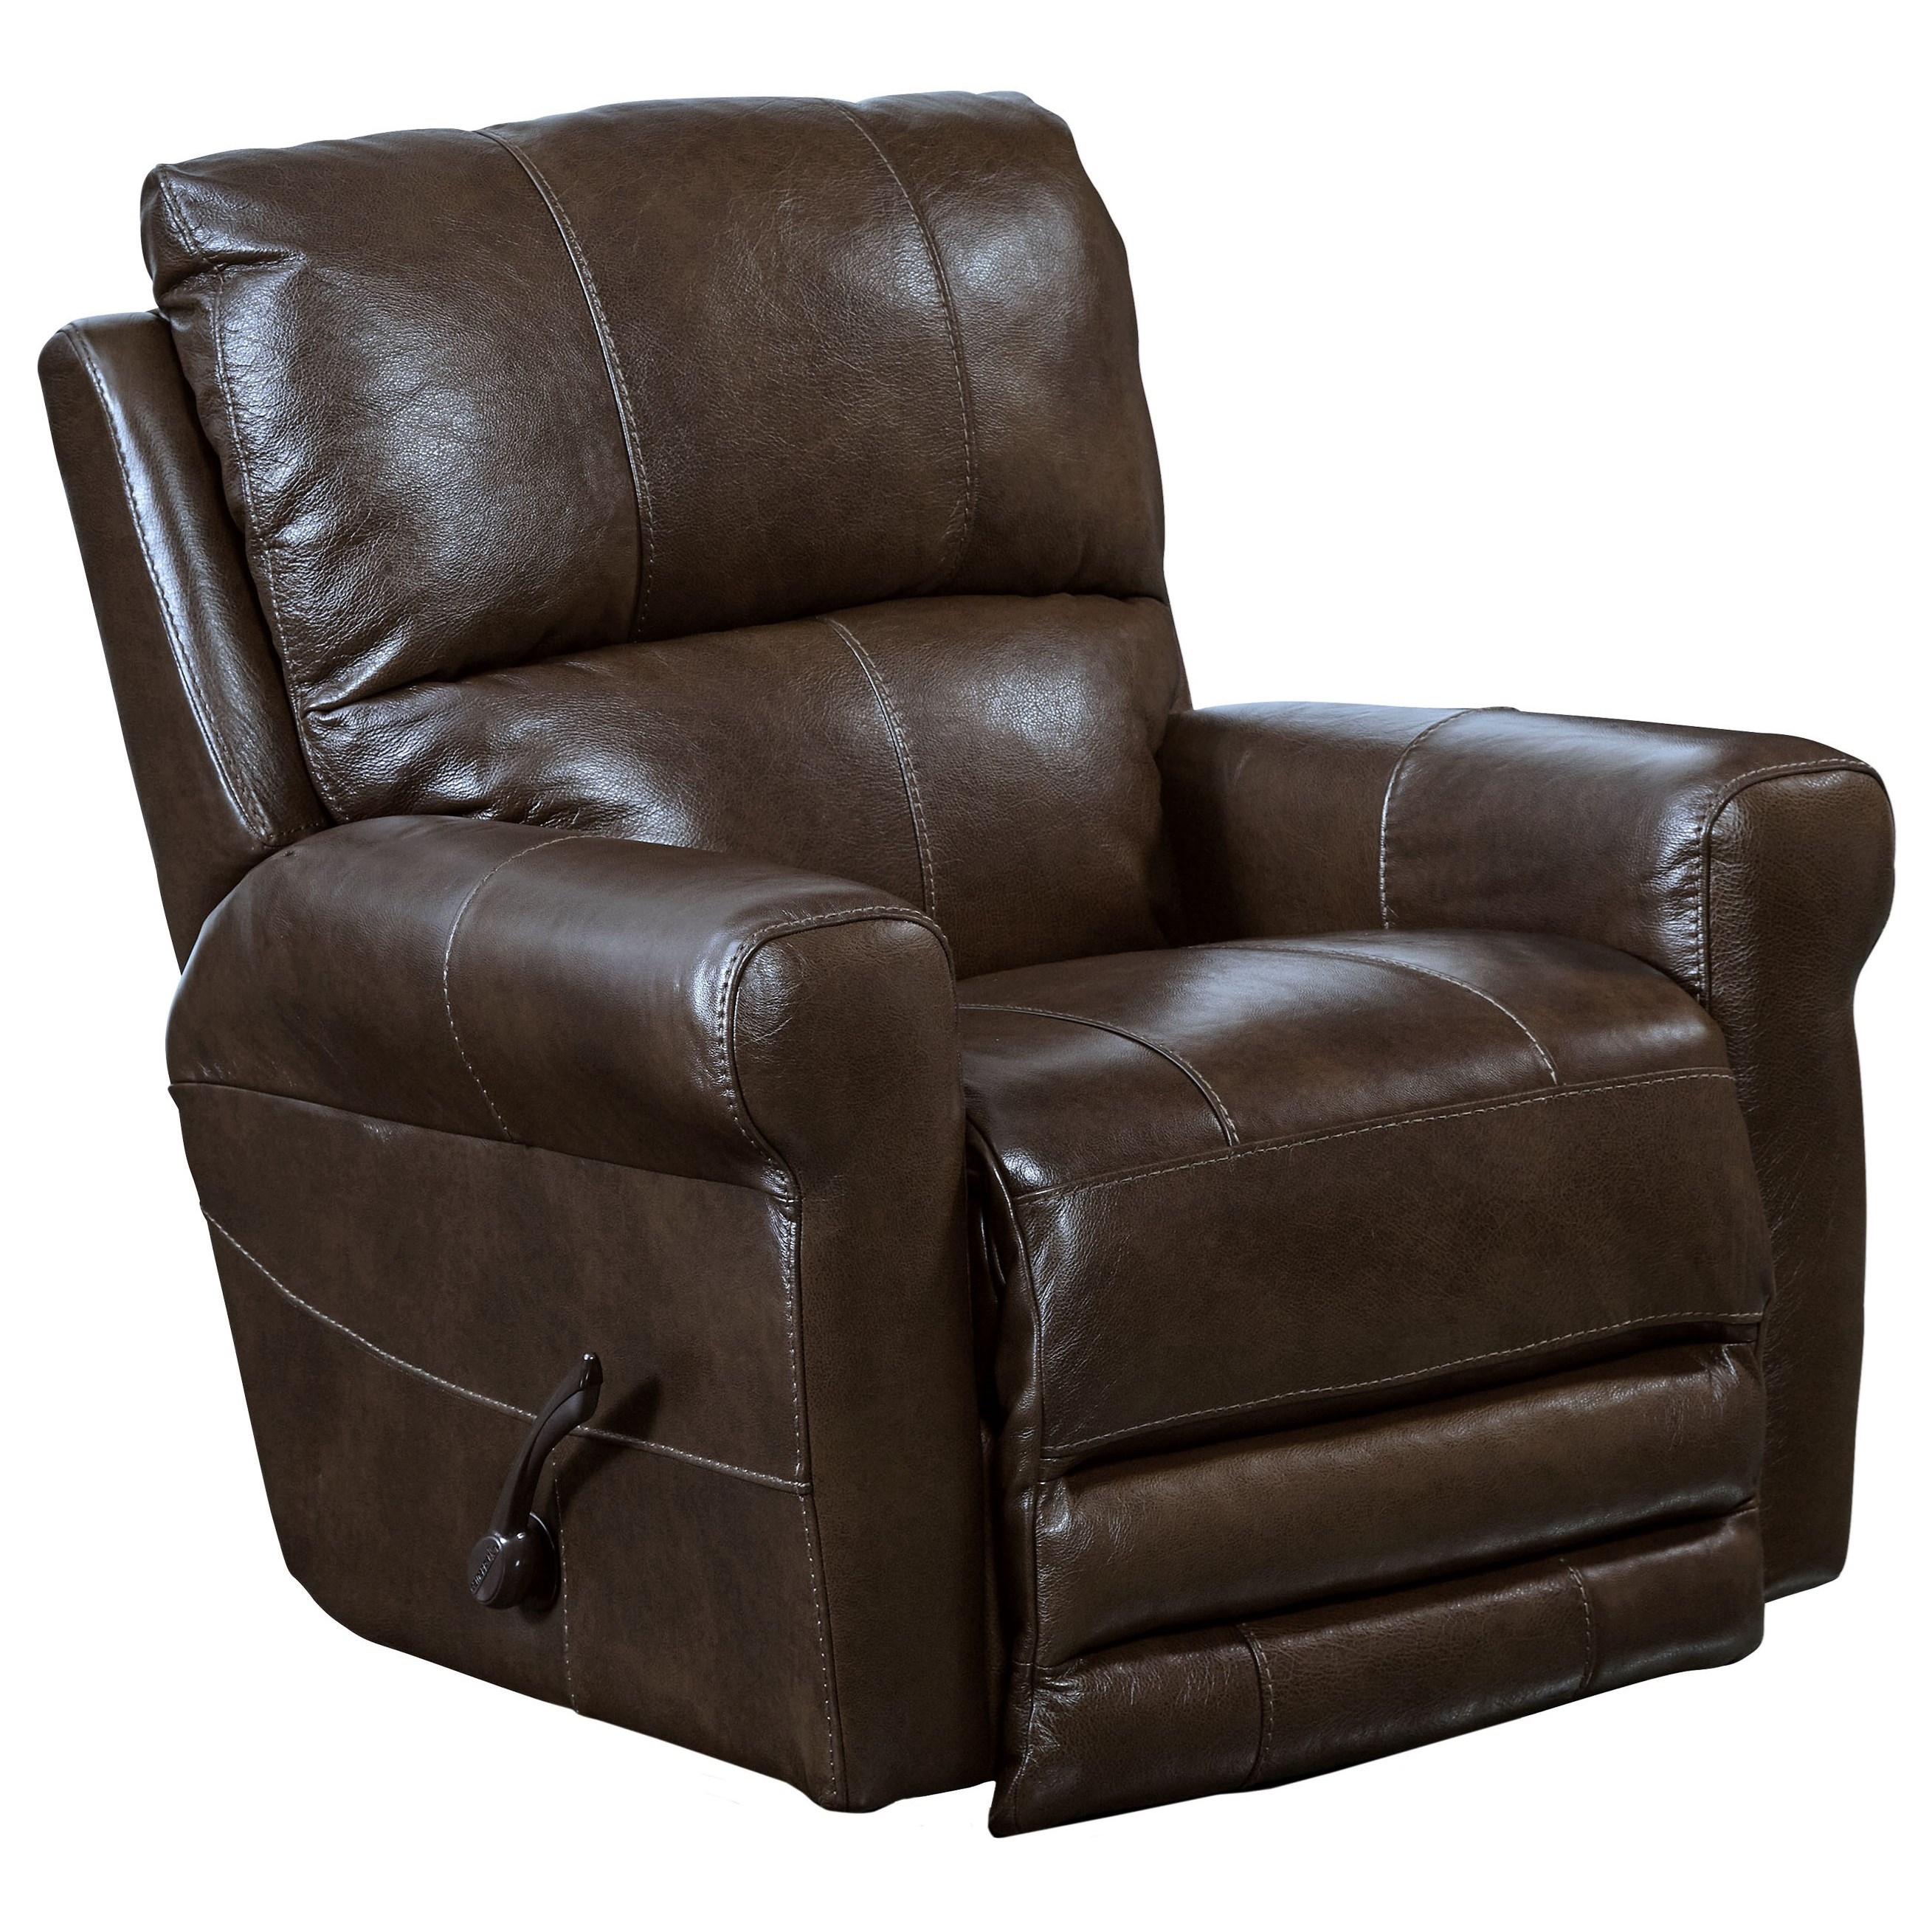 furniture ashley leather match recliners by dark power signature wide brown damacio number item zero design wall recliner products